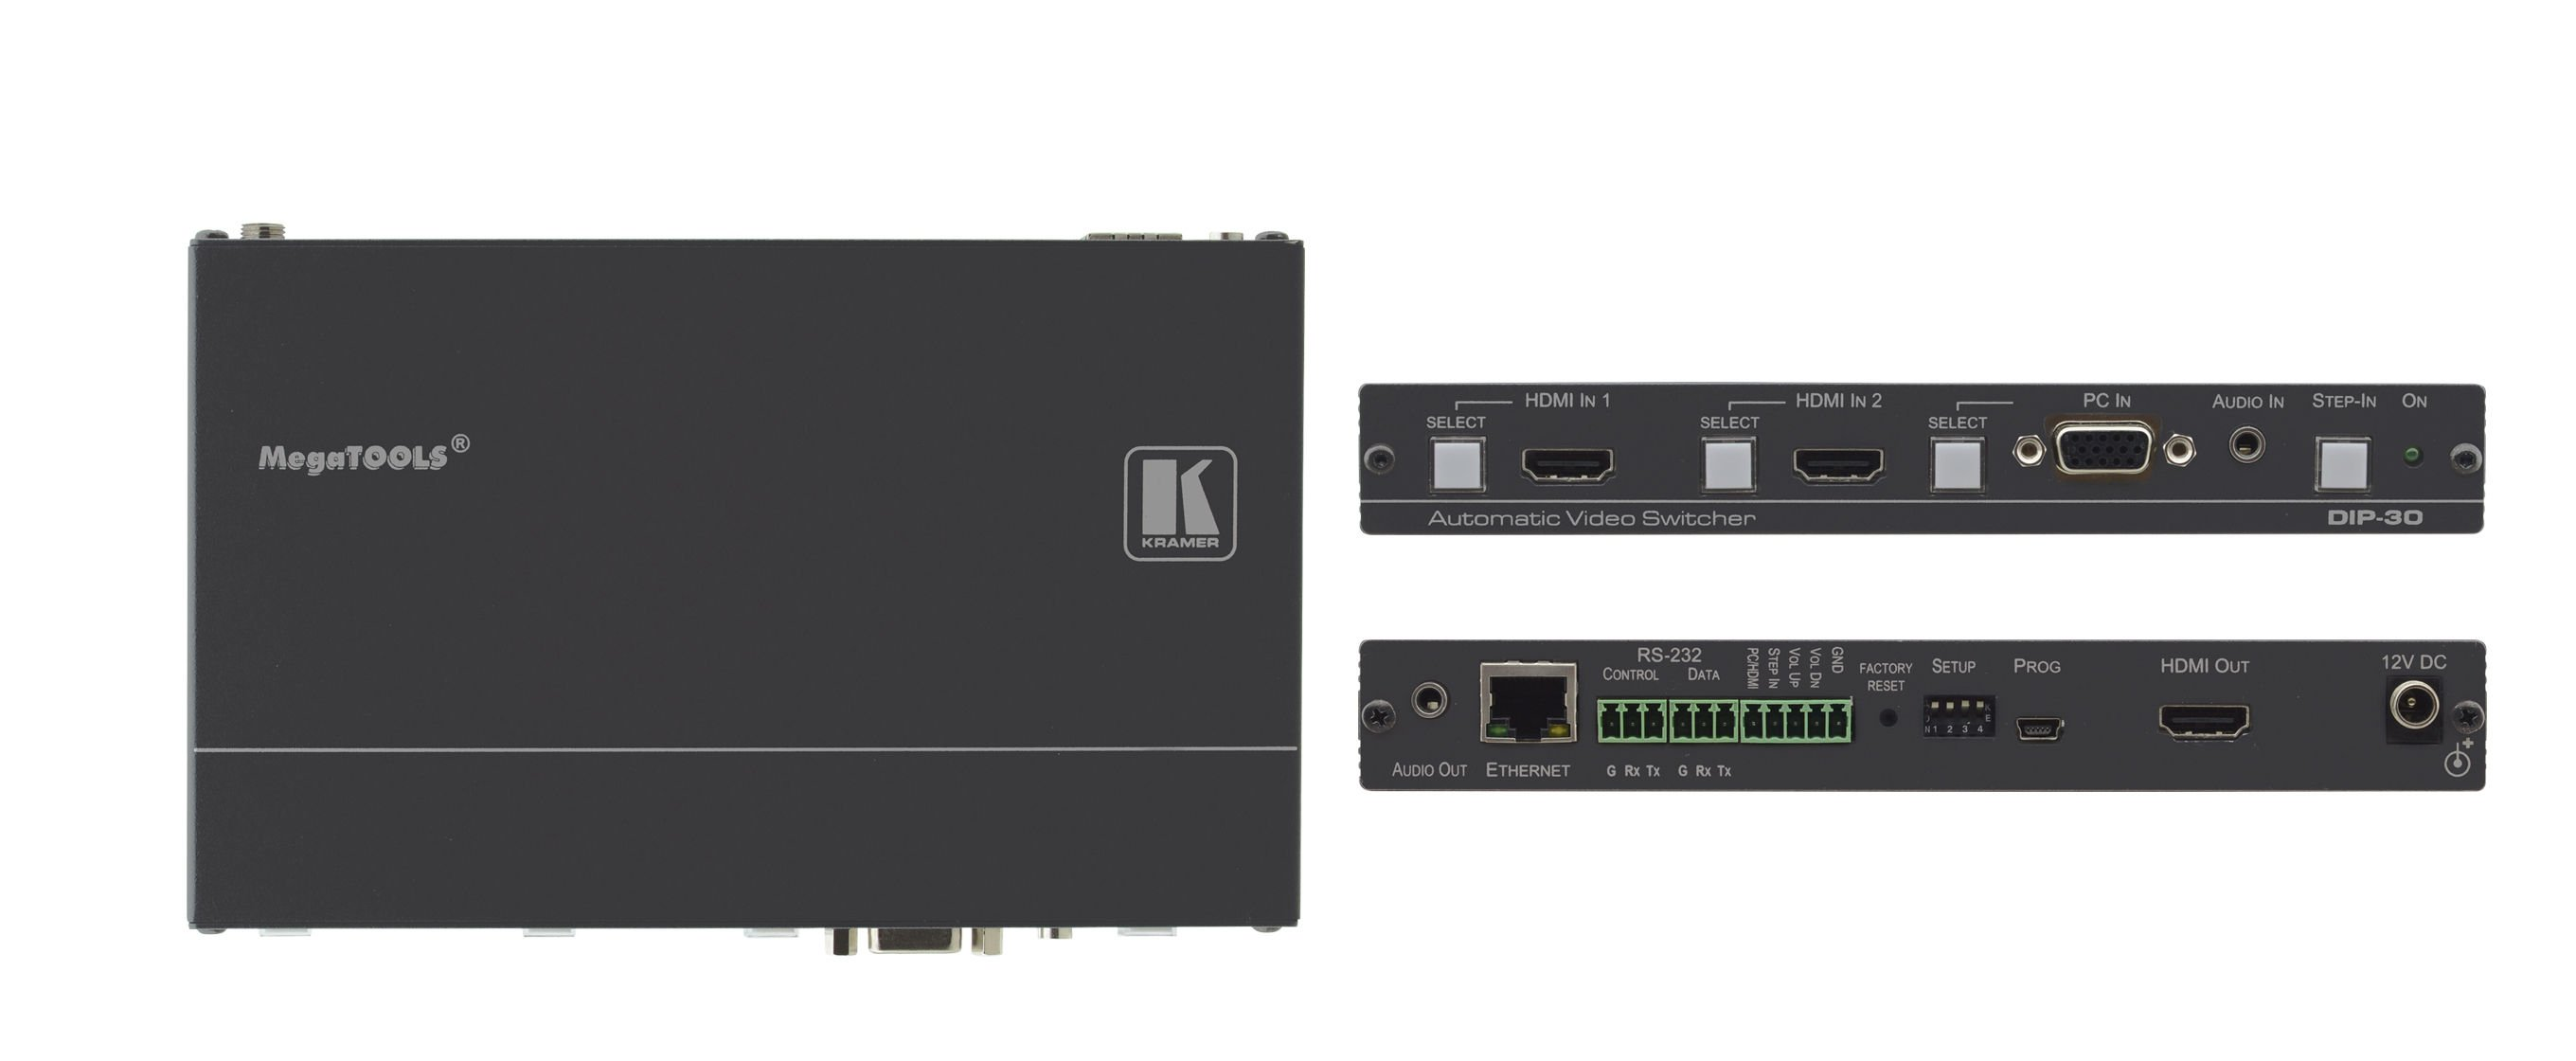 4K UHD HDMI & Computer Graphics Automatic Video Switcher